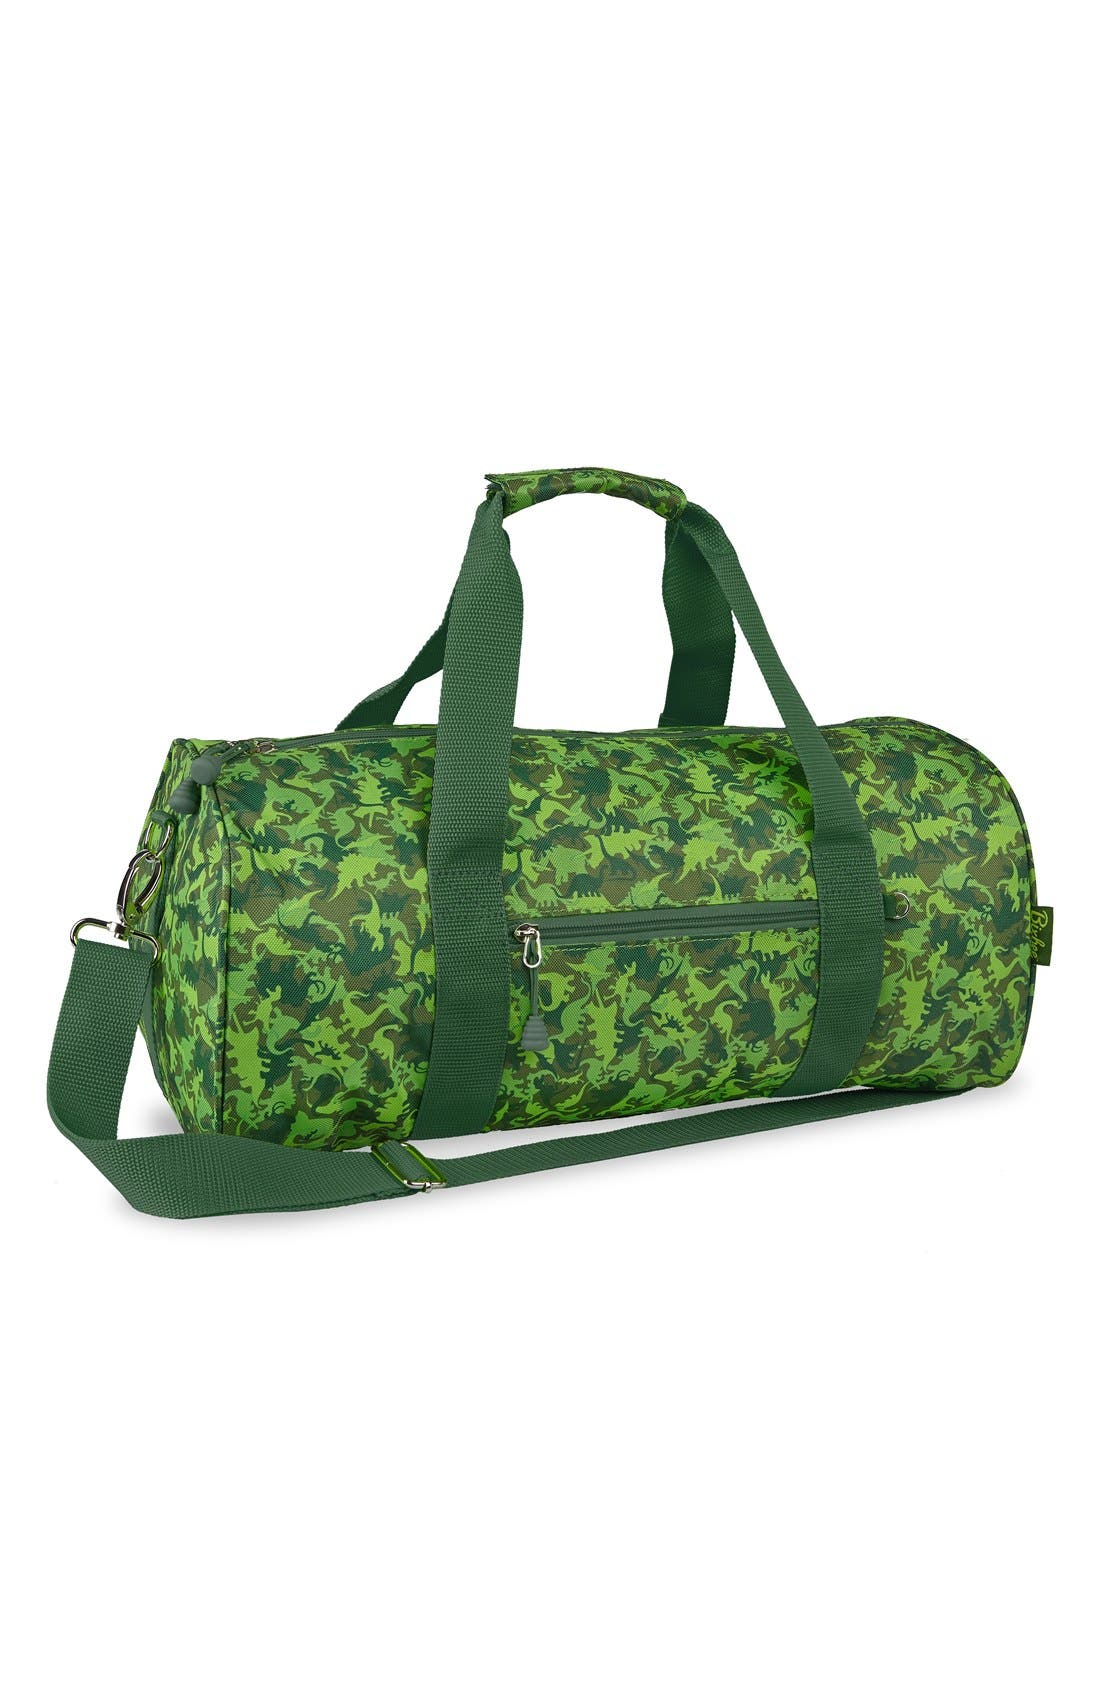 BIXBEE 'Large Dino Camo' Sports Duffel Bag